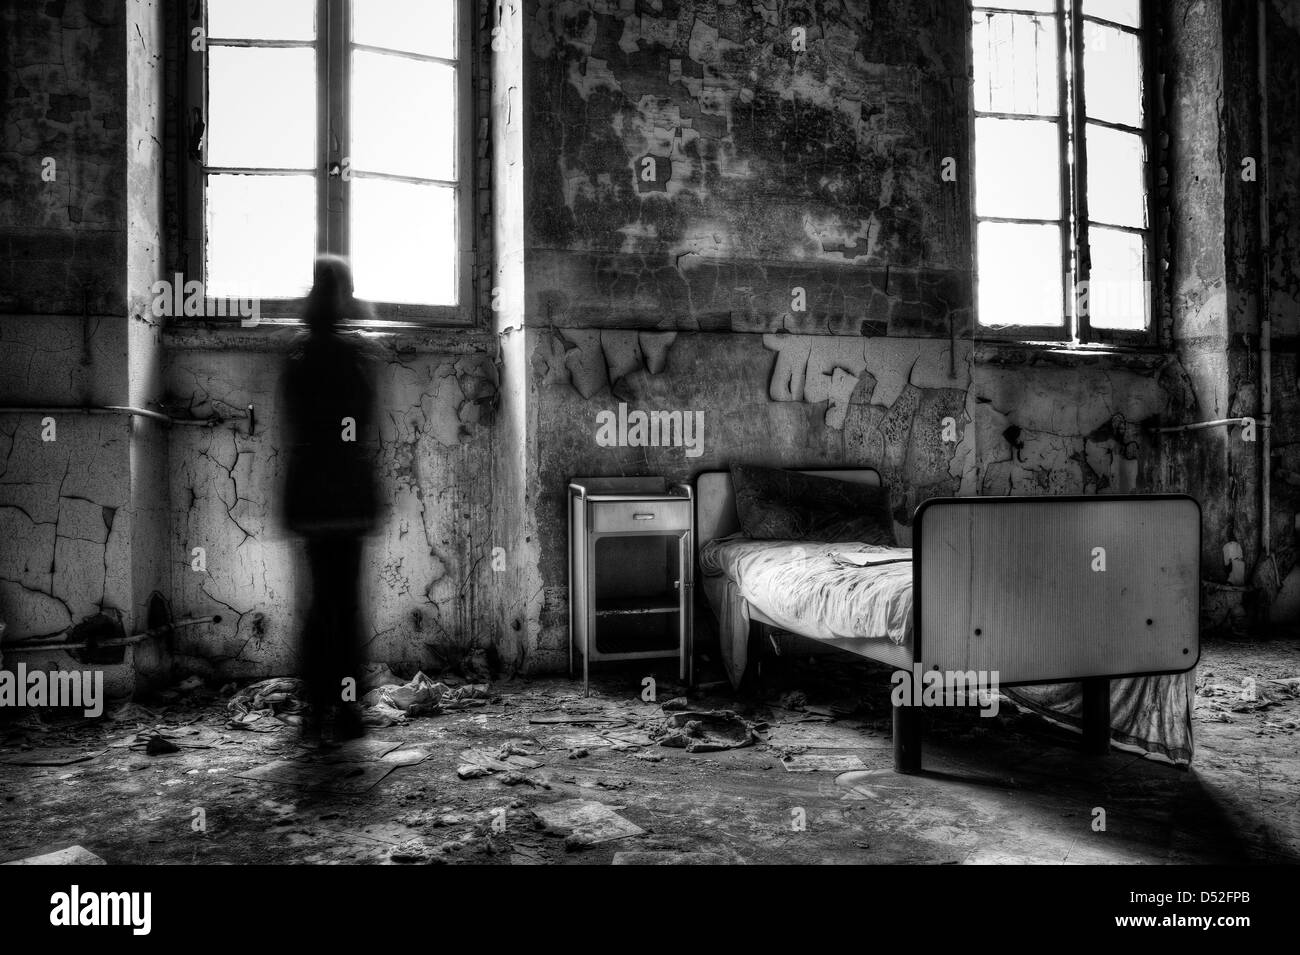 Italy. Abandoned psychiatric hospital room Stock Photo ...